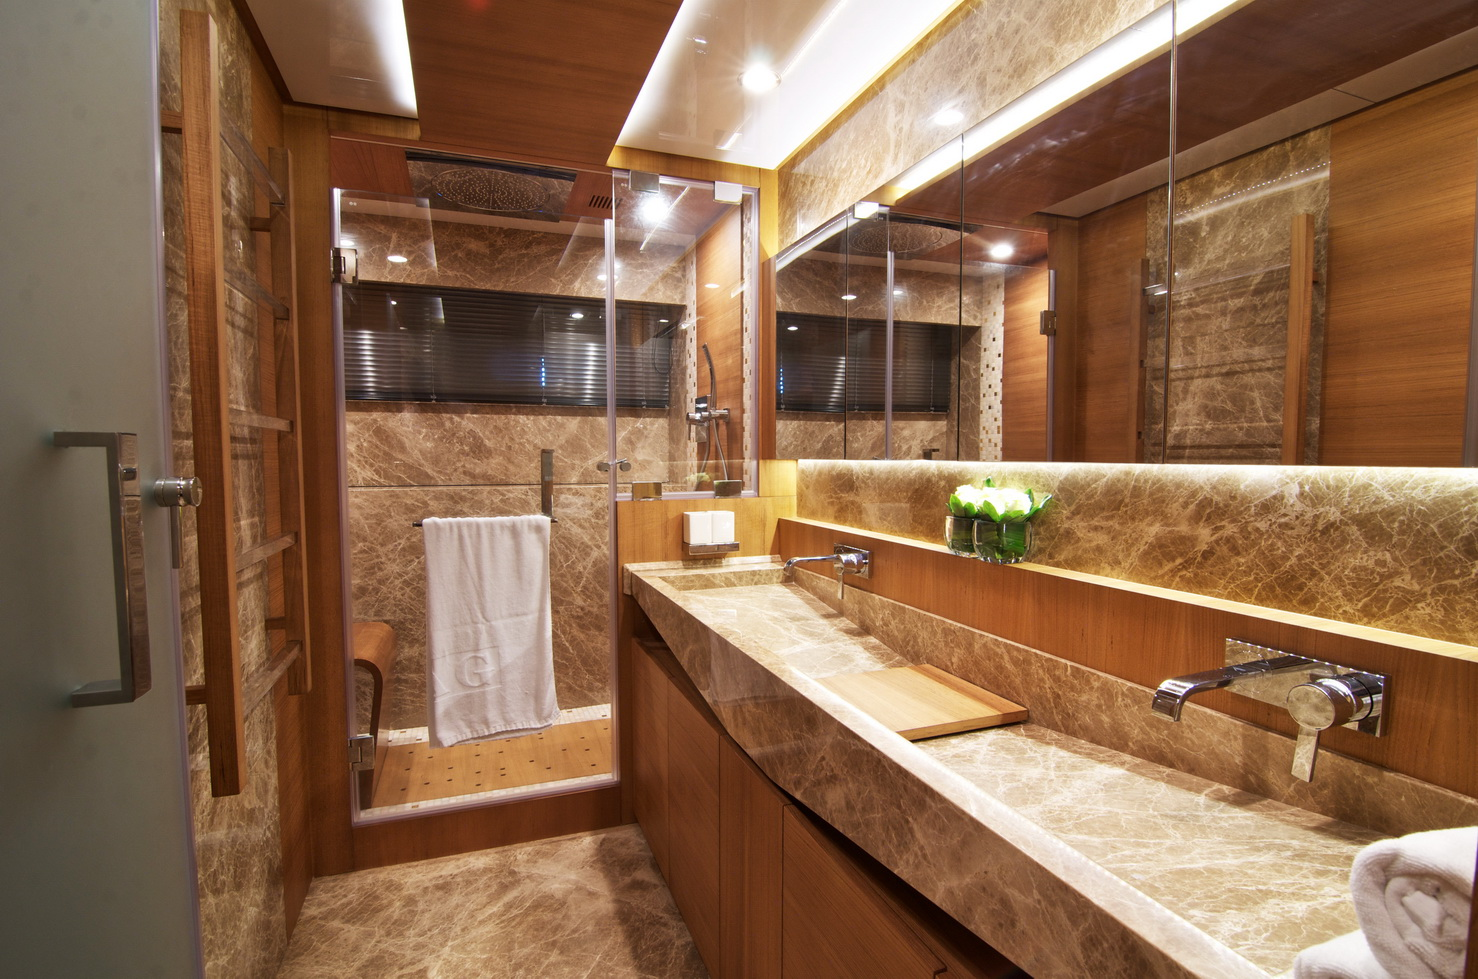 Bathroom Images Of The IAG 100 Luxury Yacht ELECTRA By IAG Yachts